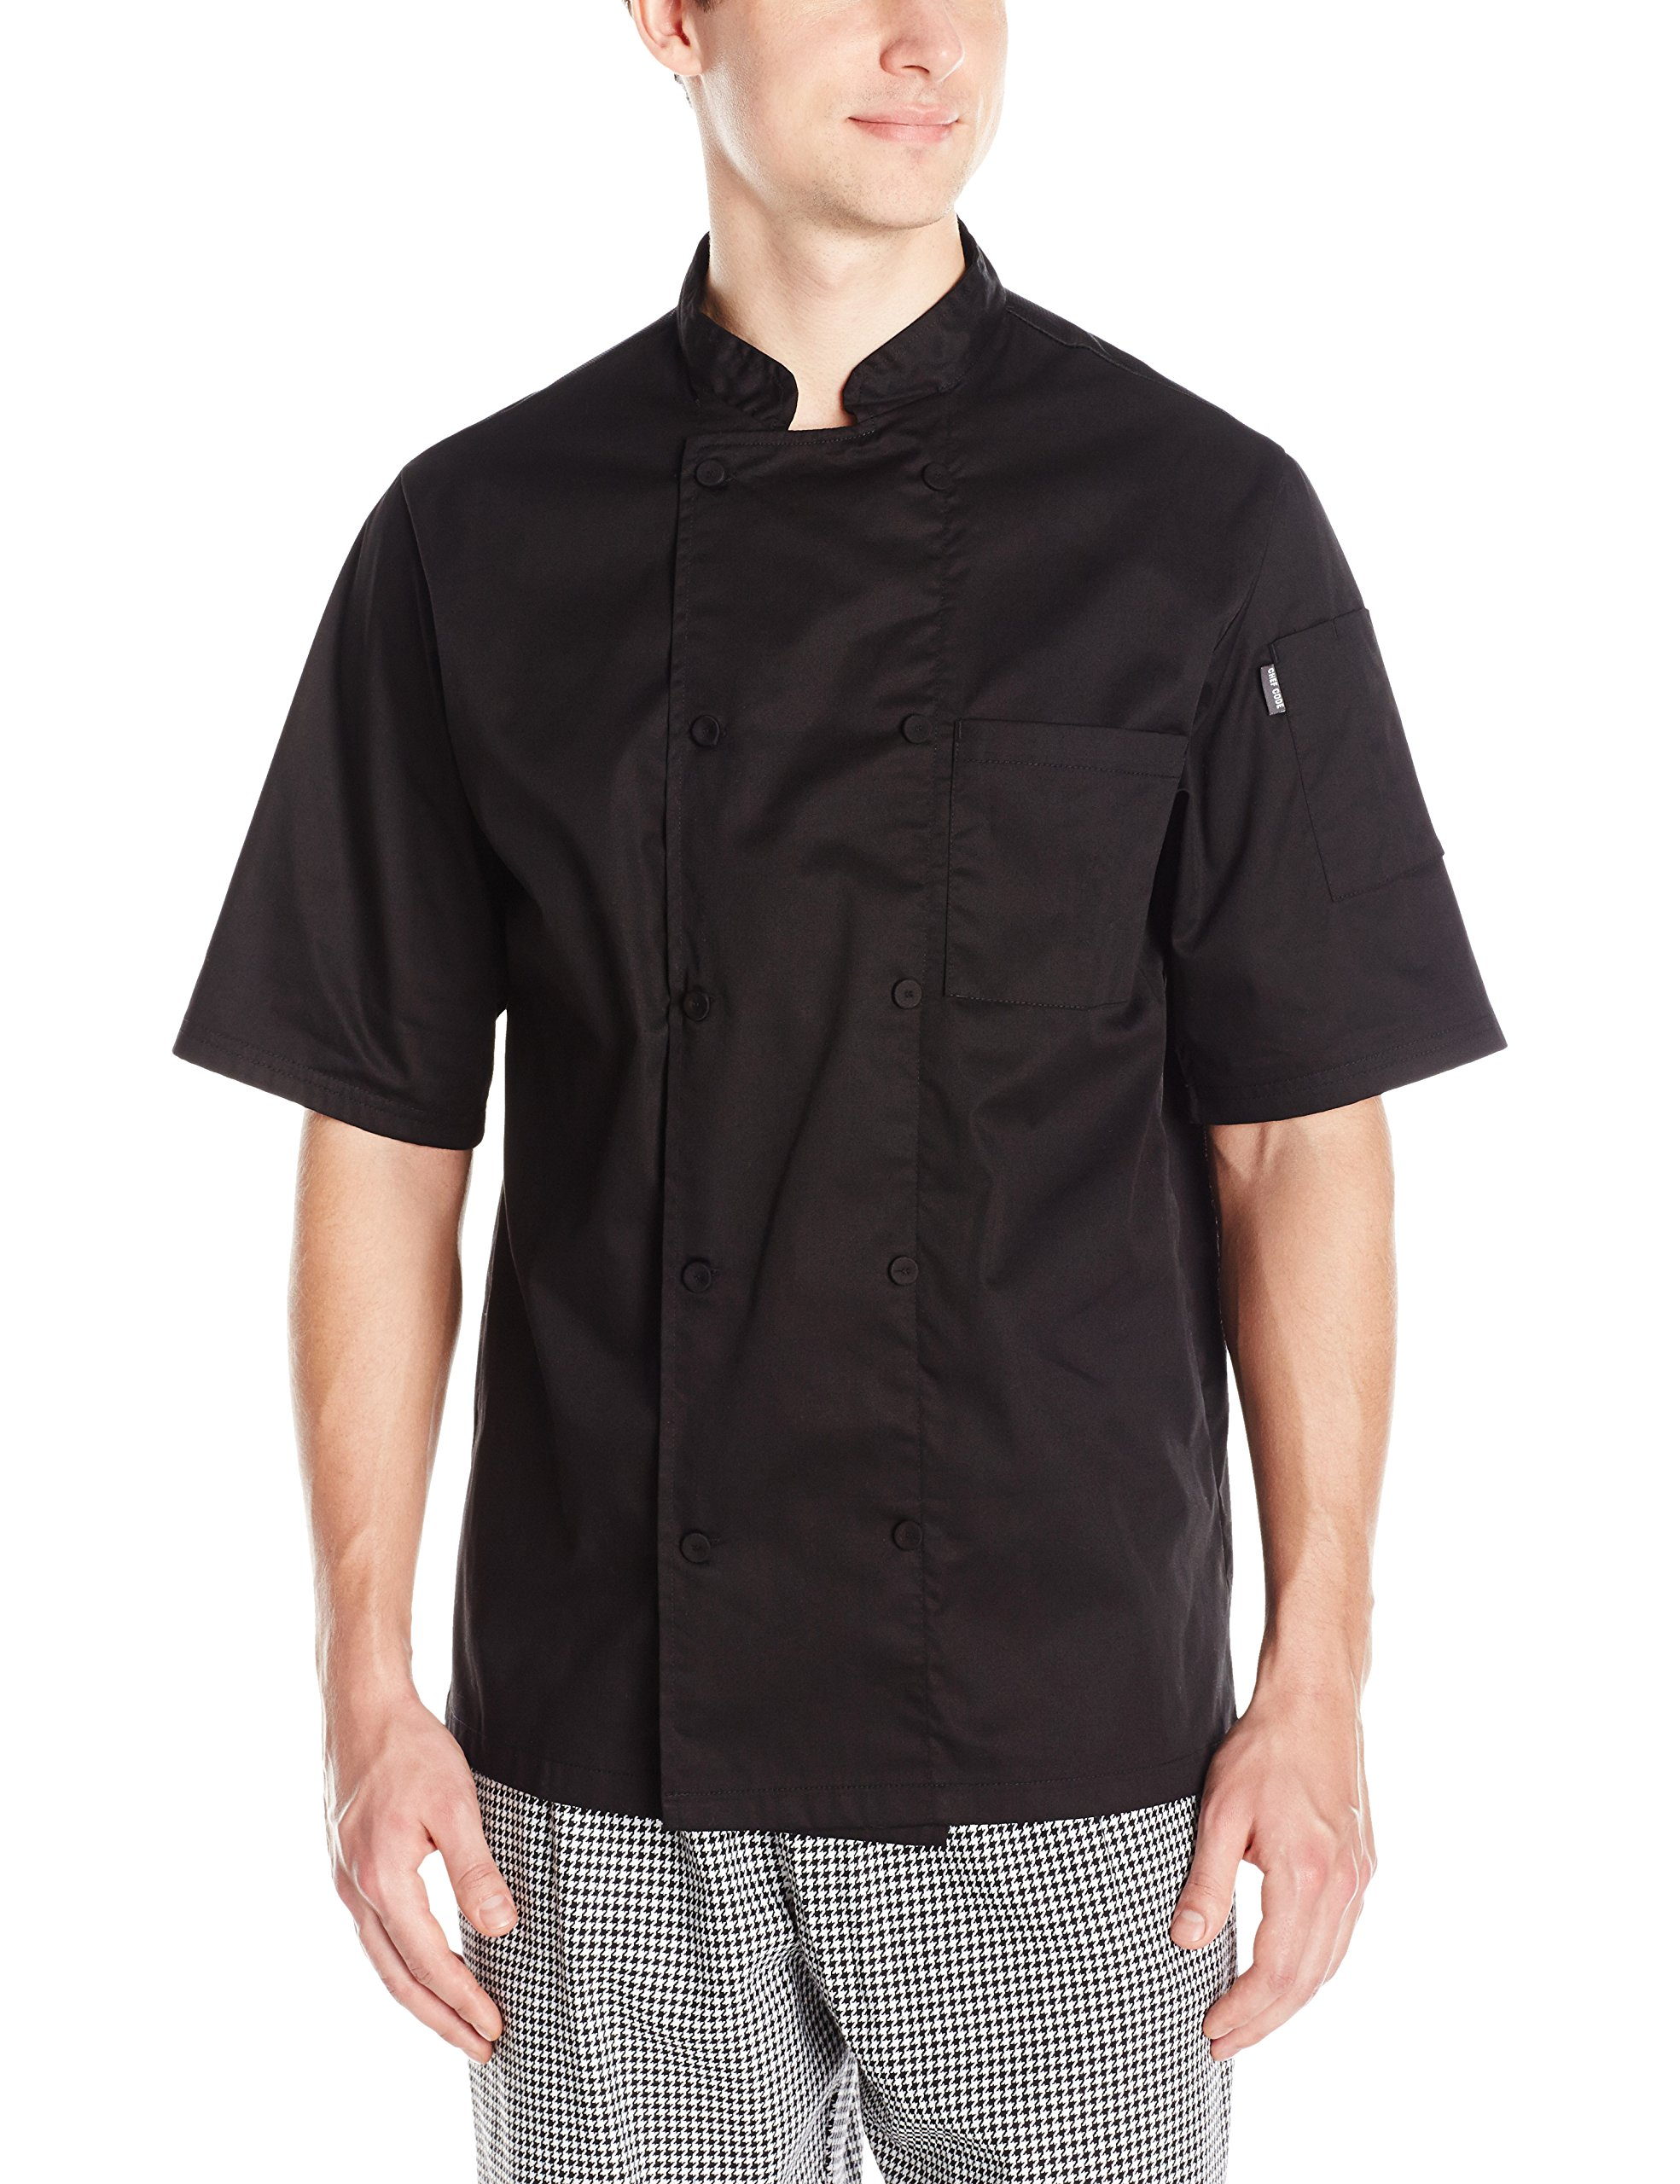 Chef Code Men's Short Sleeve Unisex Cool Breeze Chef Coats, Black, 5X-Large by Chef Code